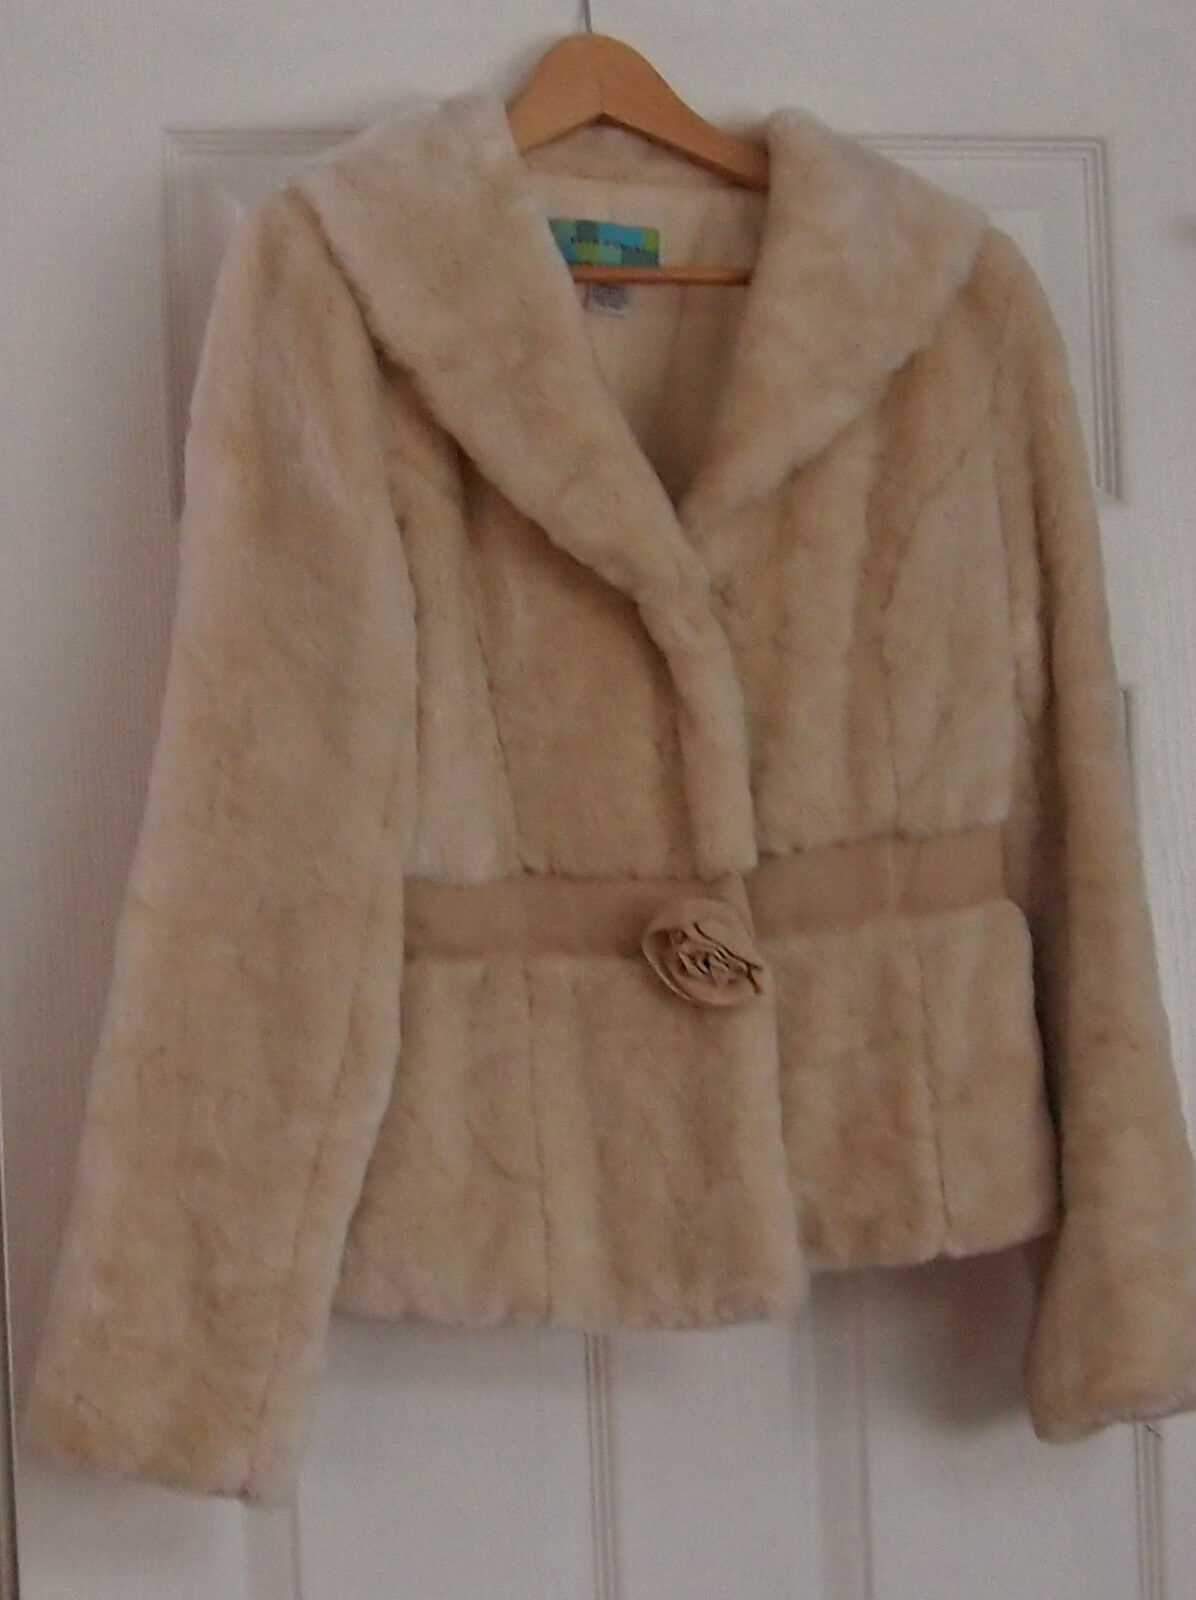 Off White Faux Fur Coat By Beth Bowley Size M